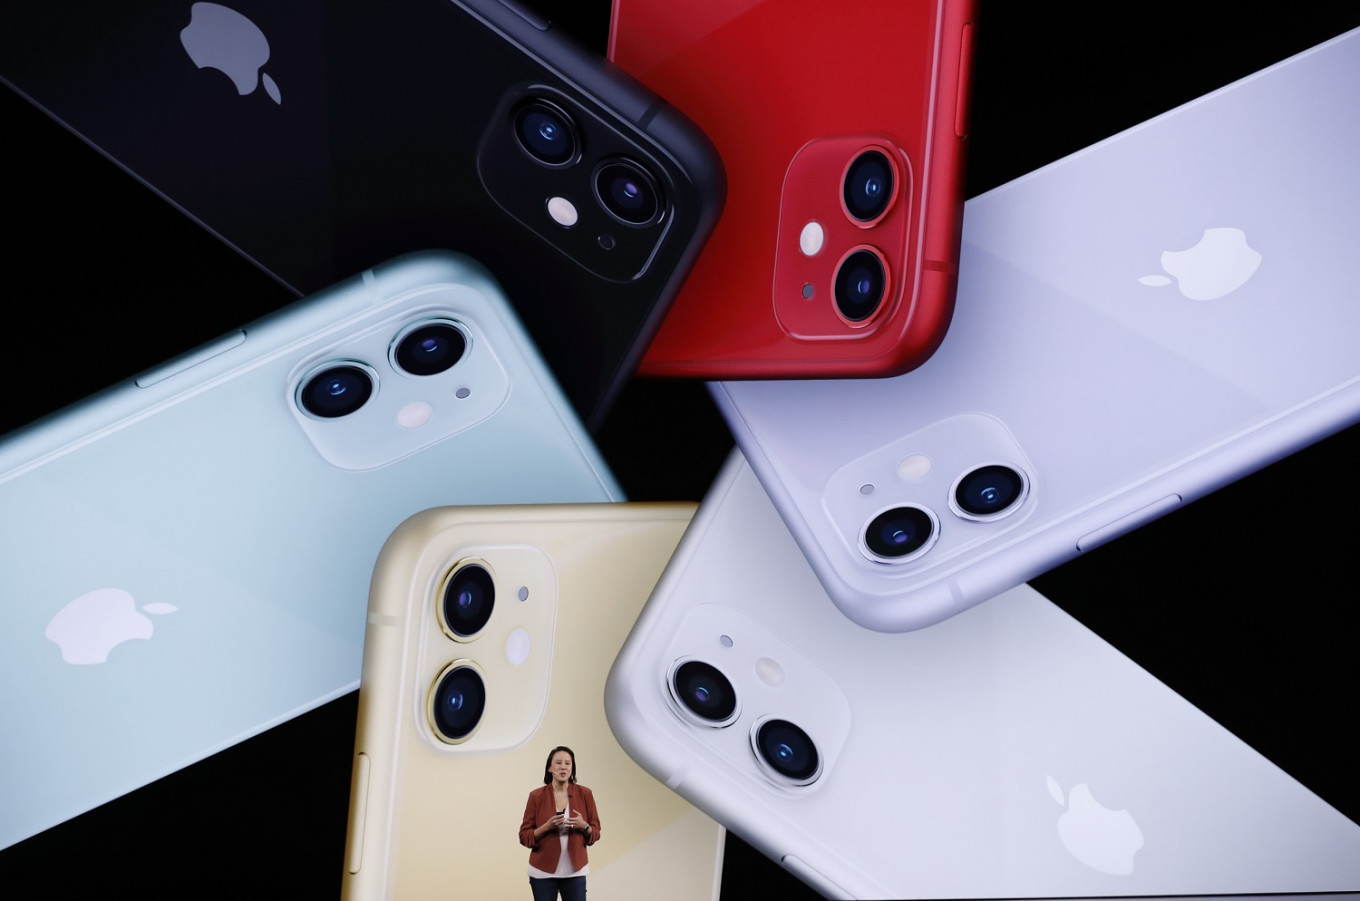 iPhone 11 available in December for Rp 27 million